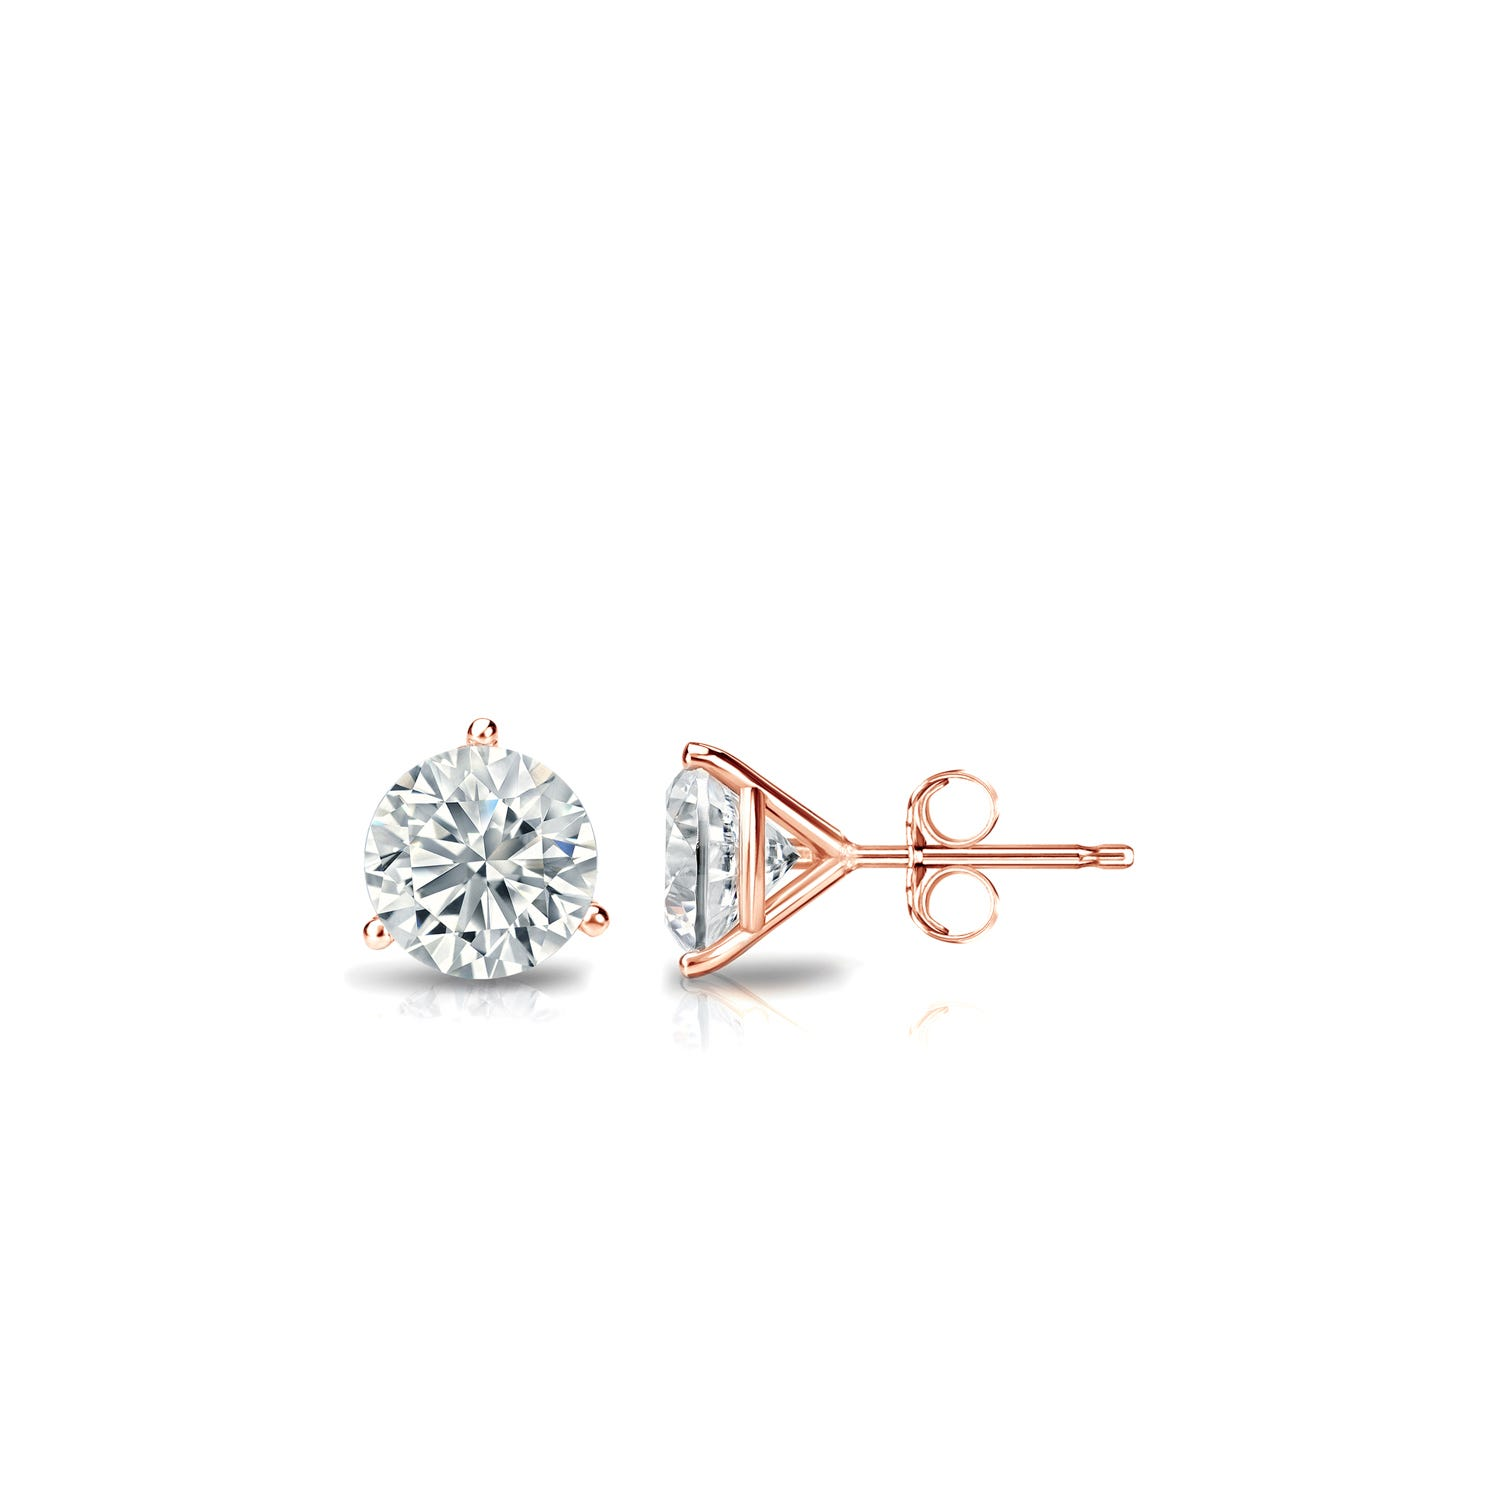 1/3 CTTW Round Diamond Solitaire Stud Earrings IJ I2 in 10K Rose Gold 3-Prong Setting